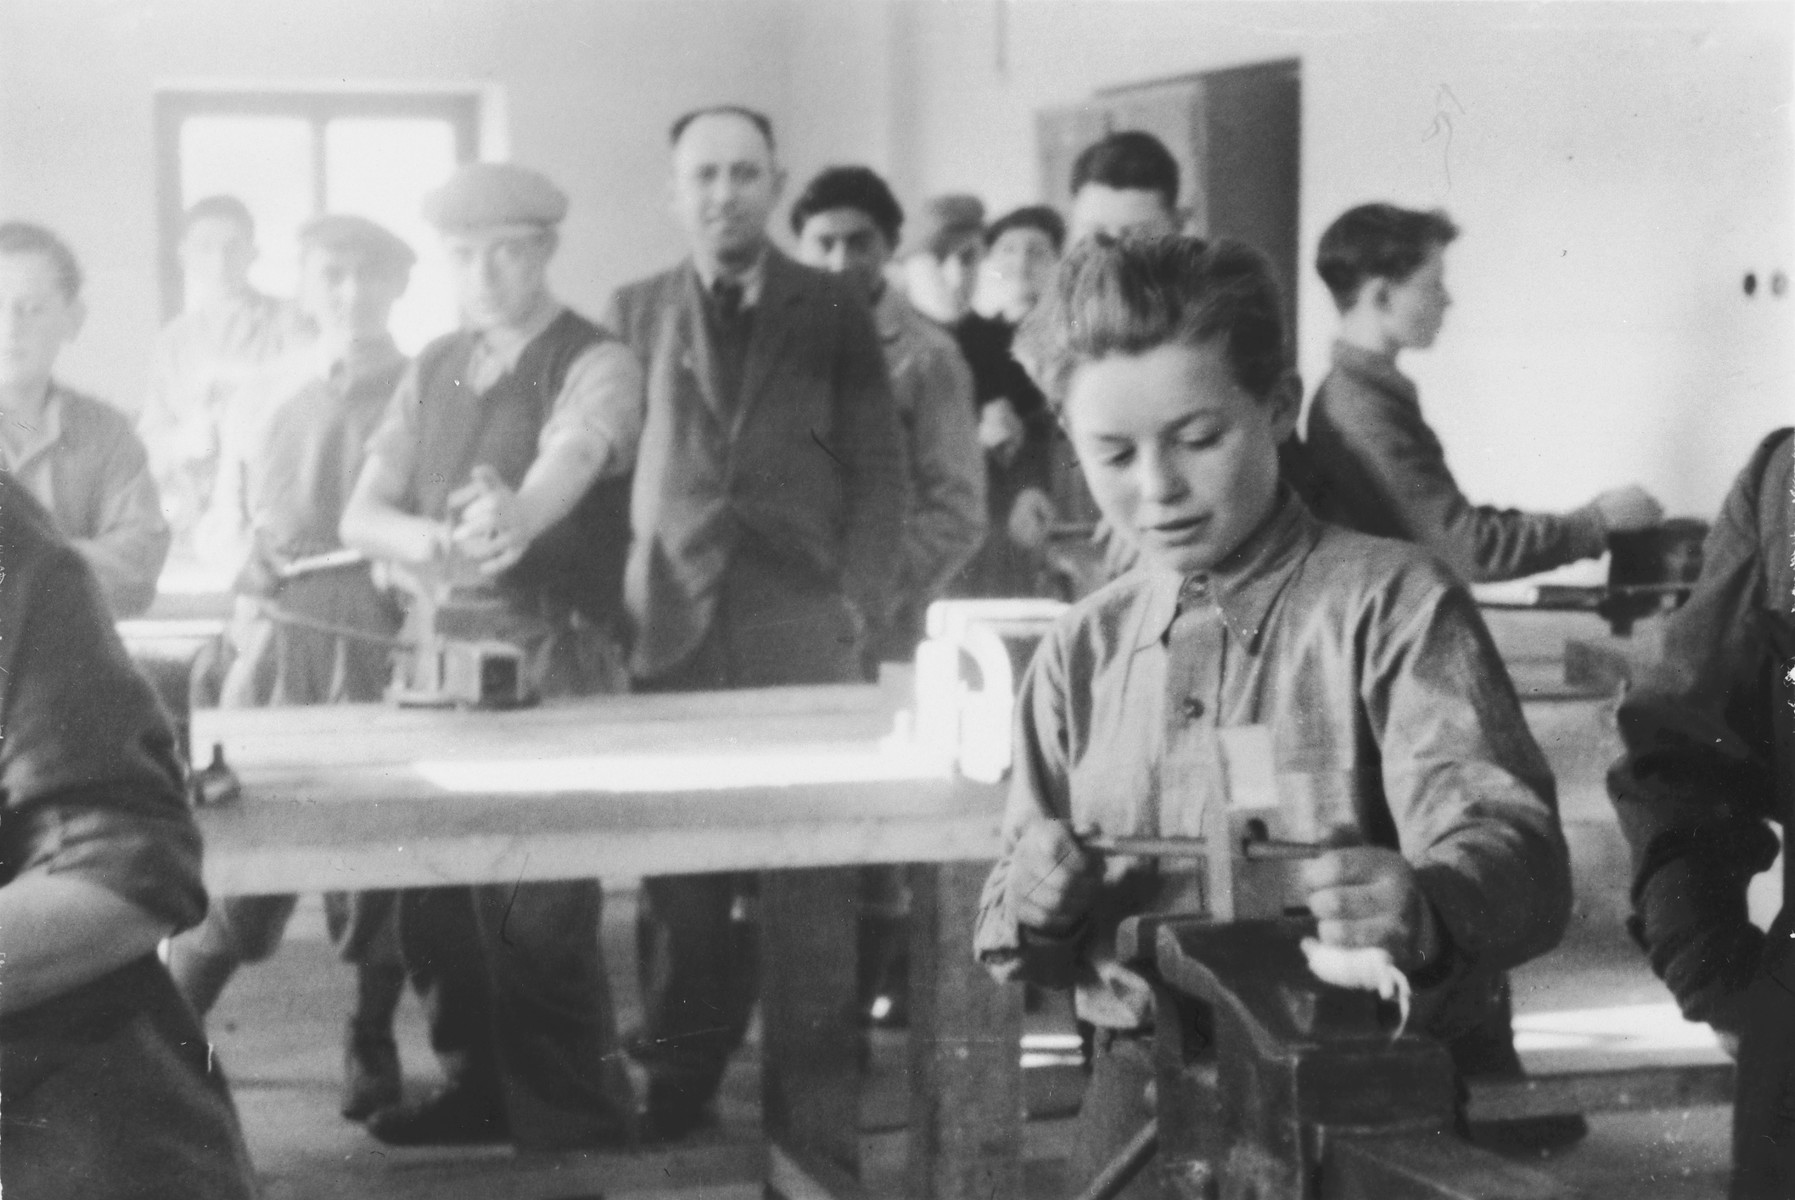 Young men study locksmithing in a vocational workshop in either the Foehrenwald or Windsheim displaced persons' camp.